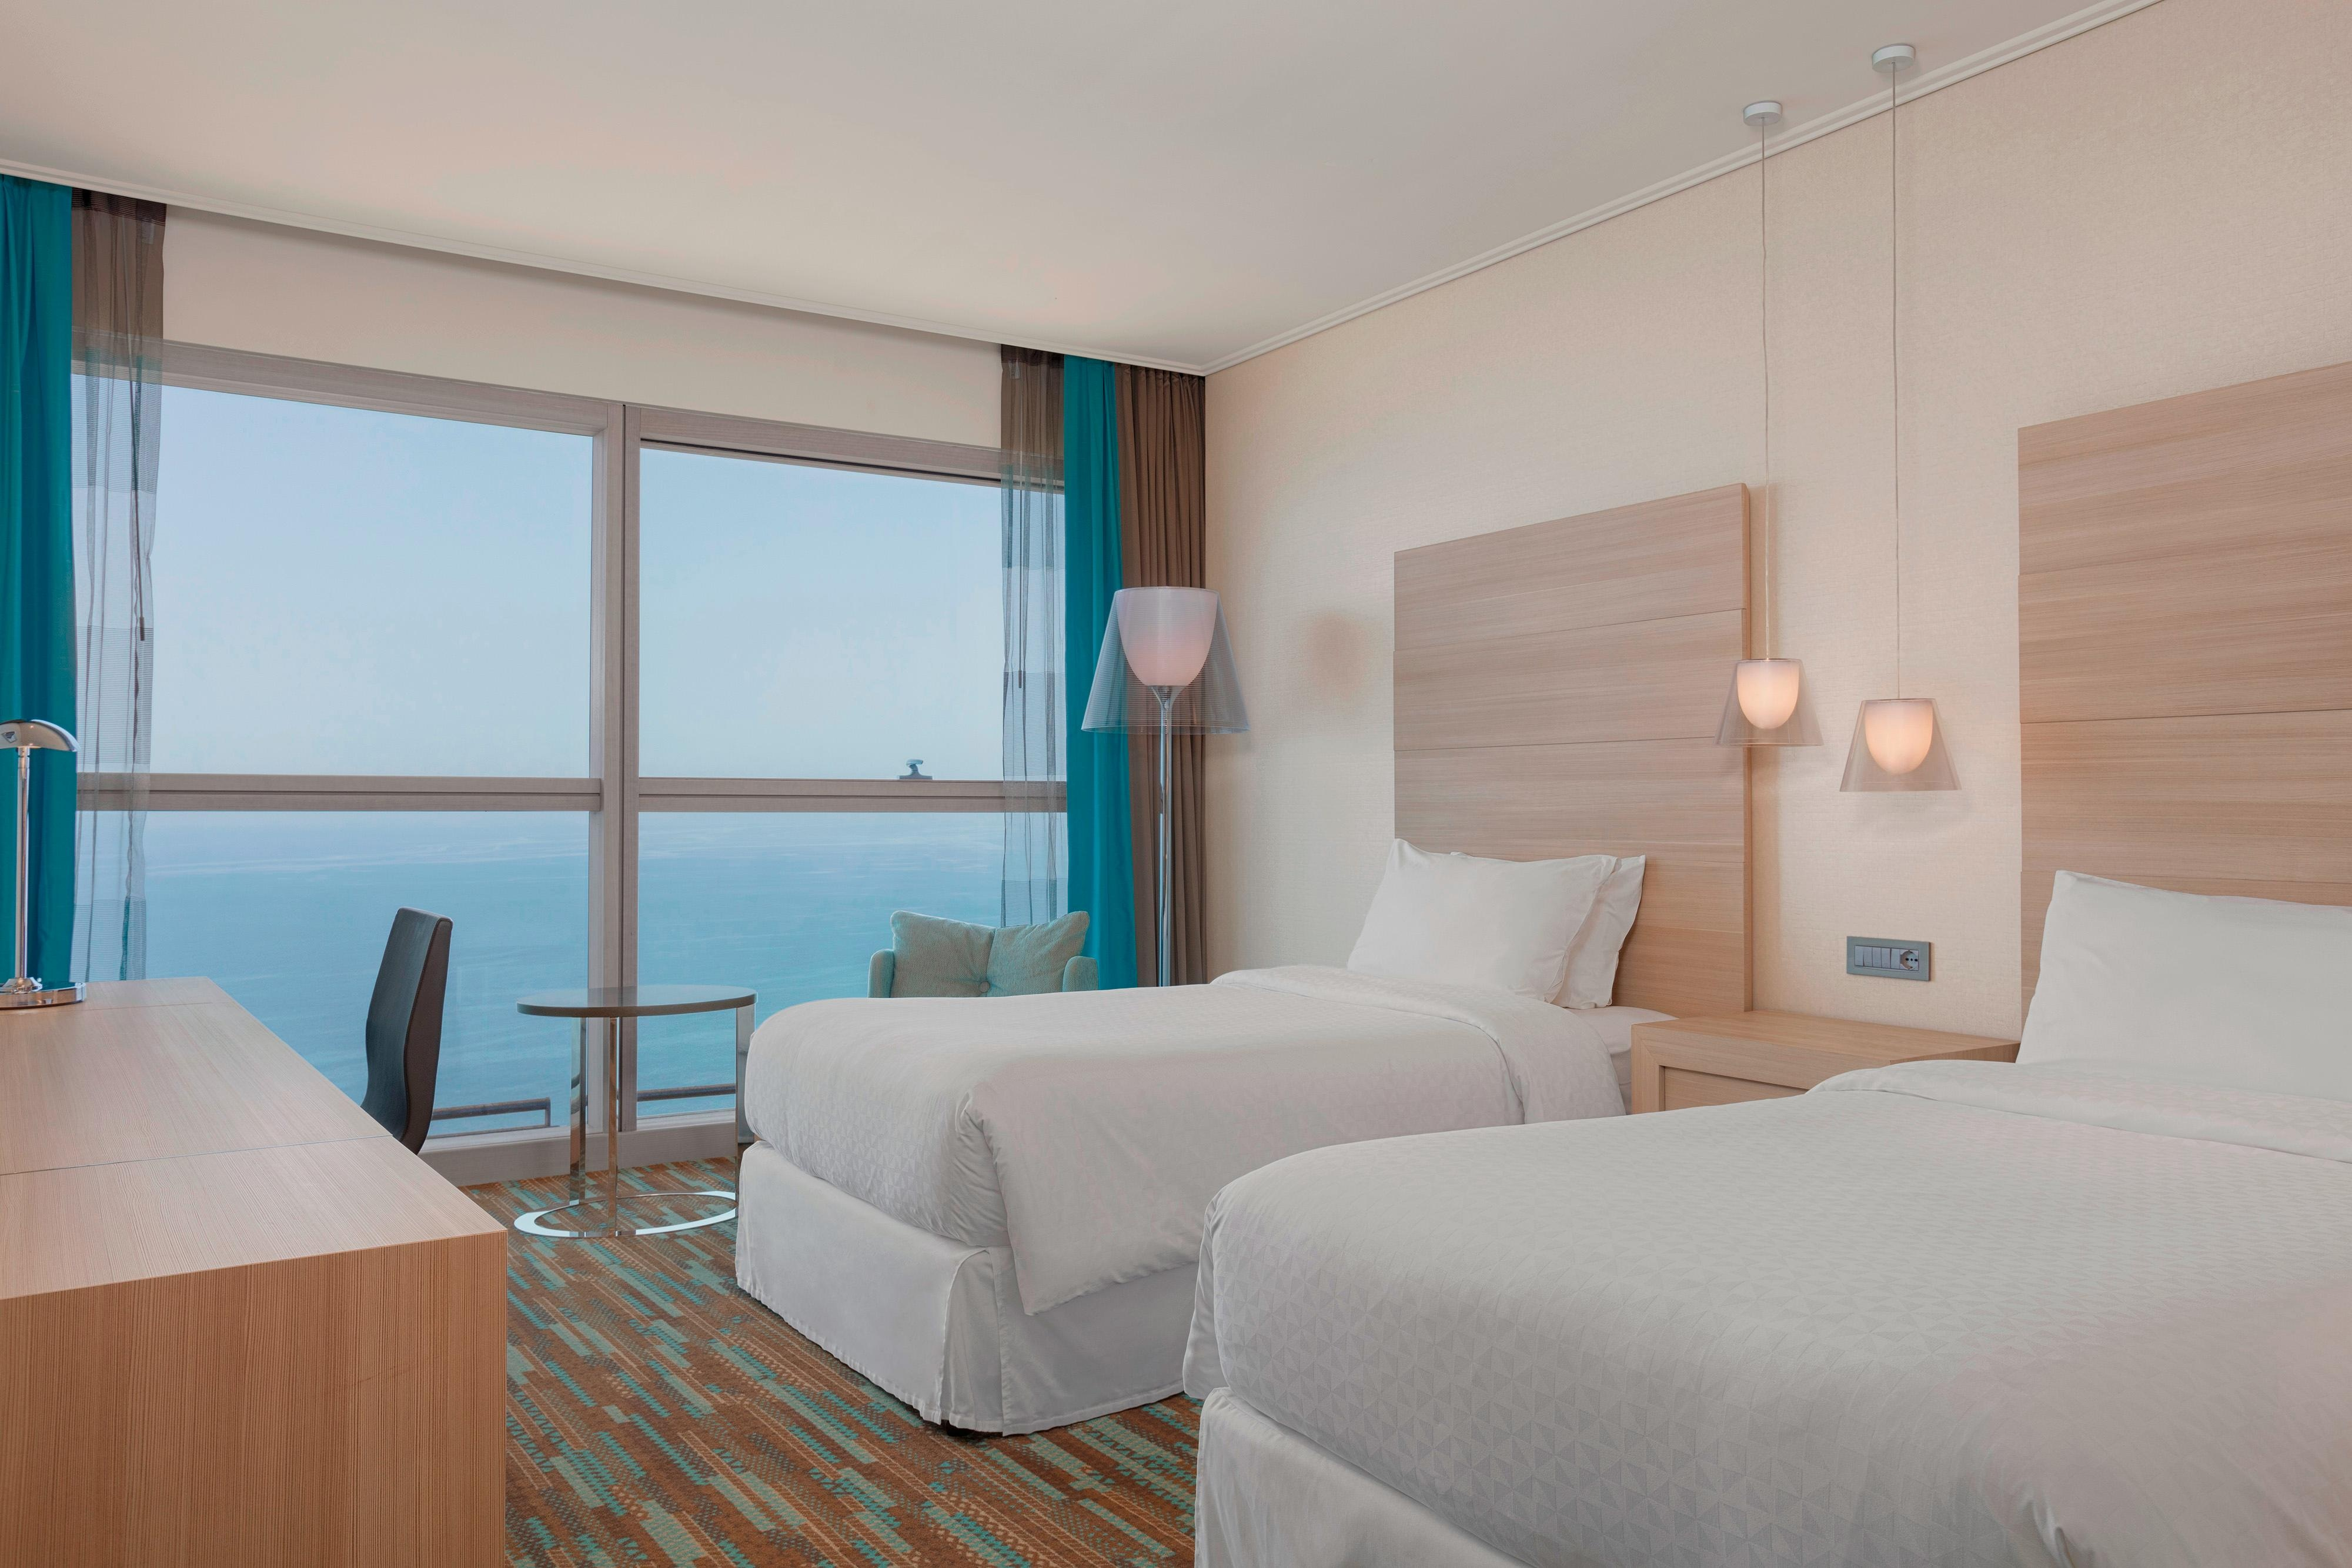 Chambre Simple Chambre Double Difference Four Points By Sheraton Oran Oran Four Points